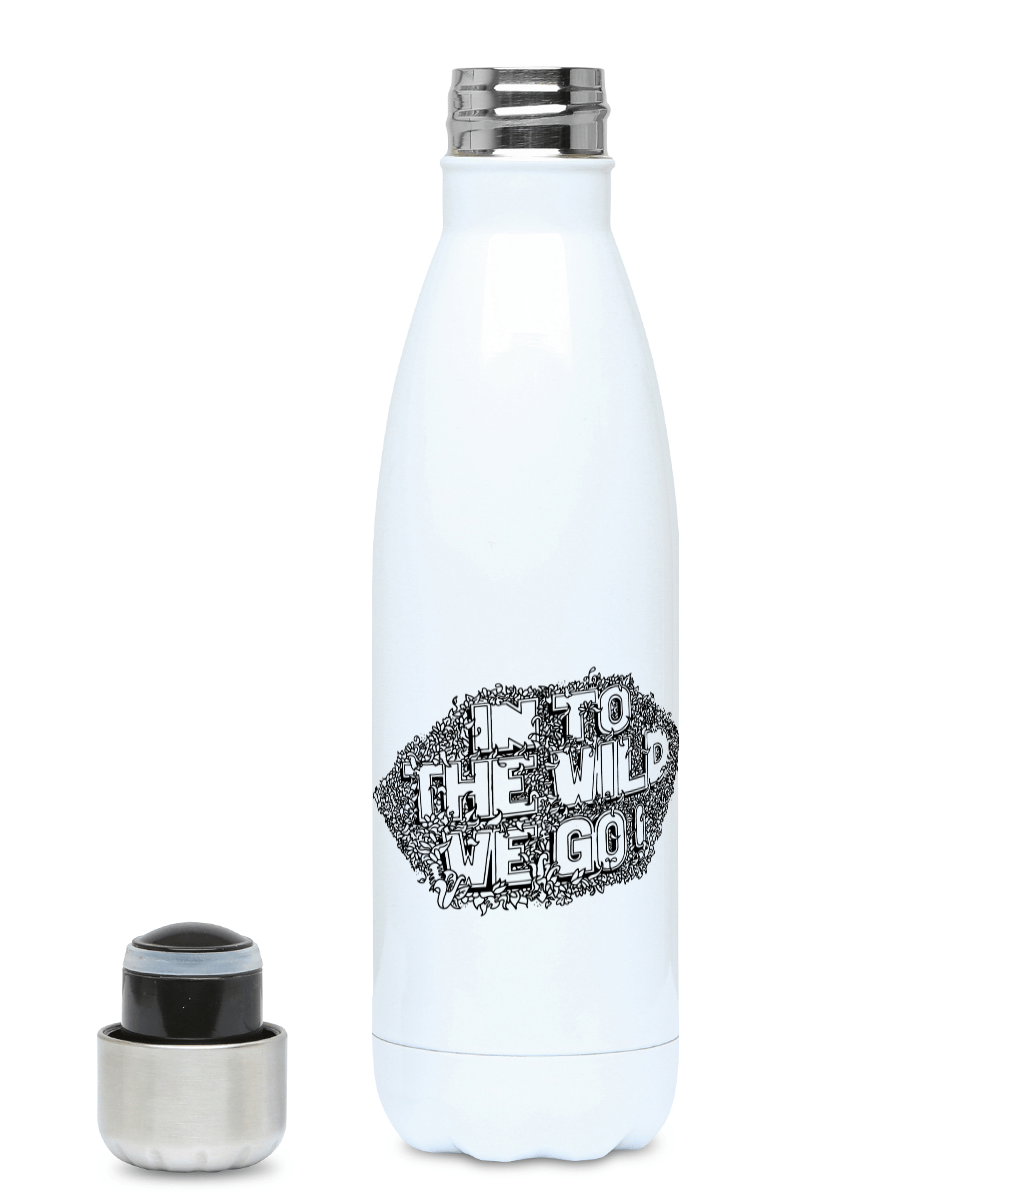 In To The Wild We Go - Plastic Free 500ml Water Bottle, Suggested Products, Pen and Ink Studios Adventure Clothing